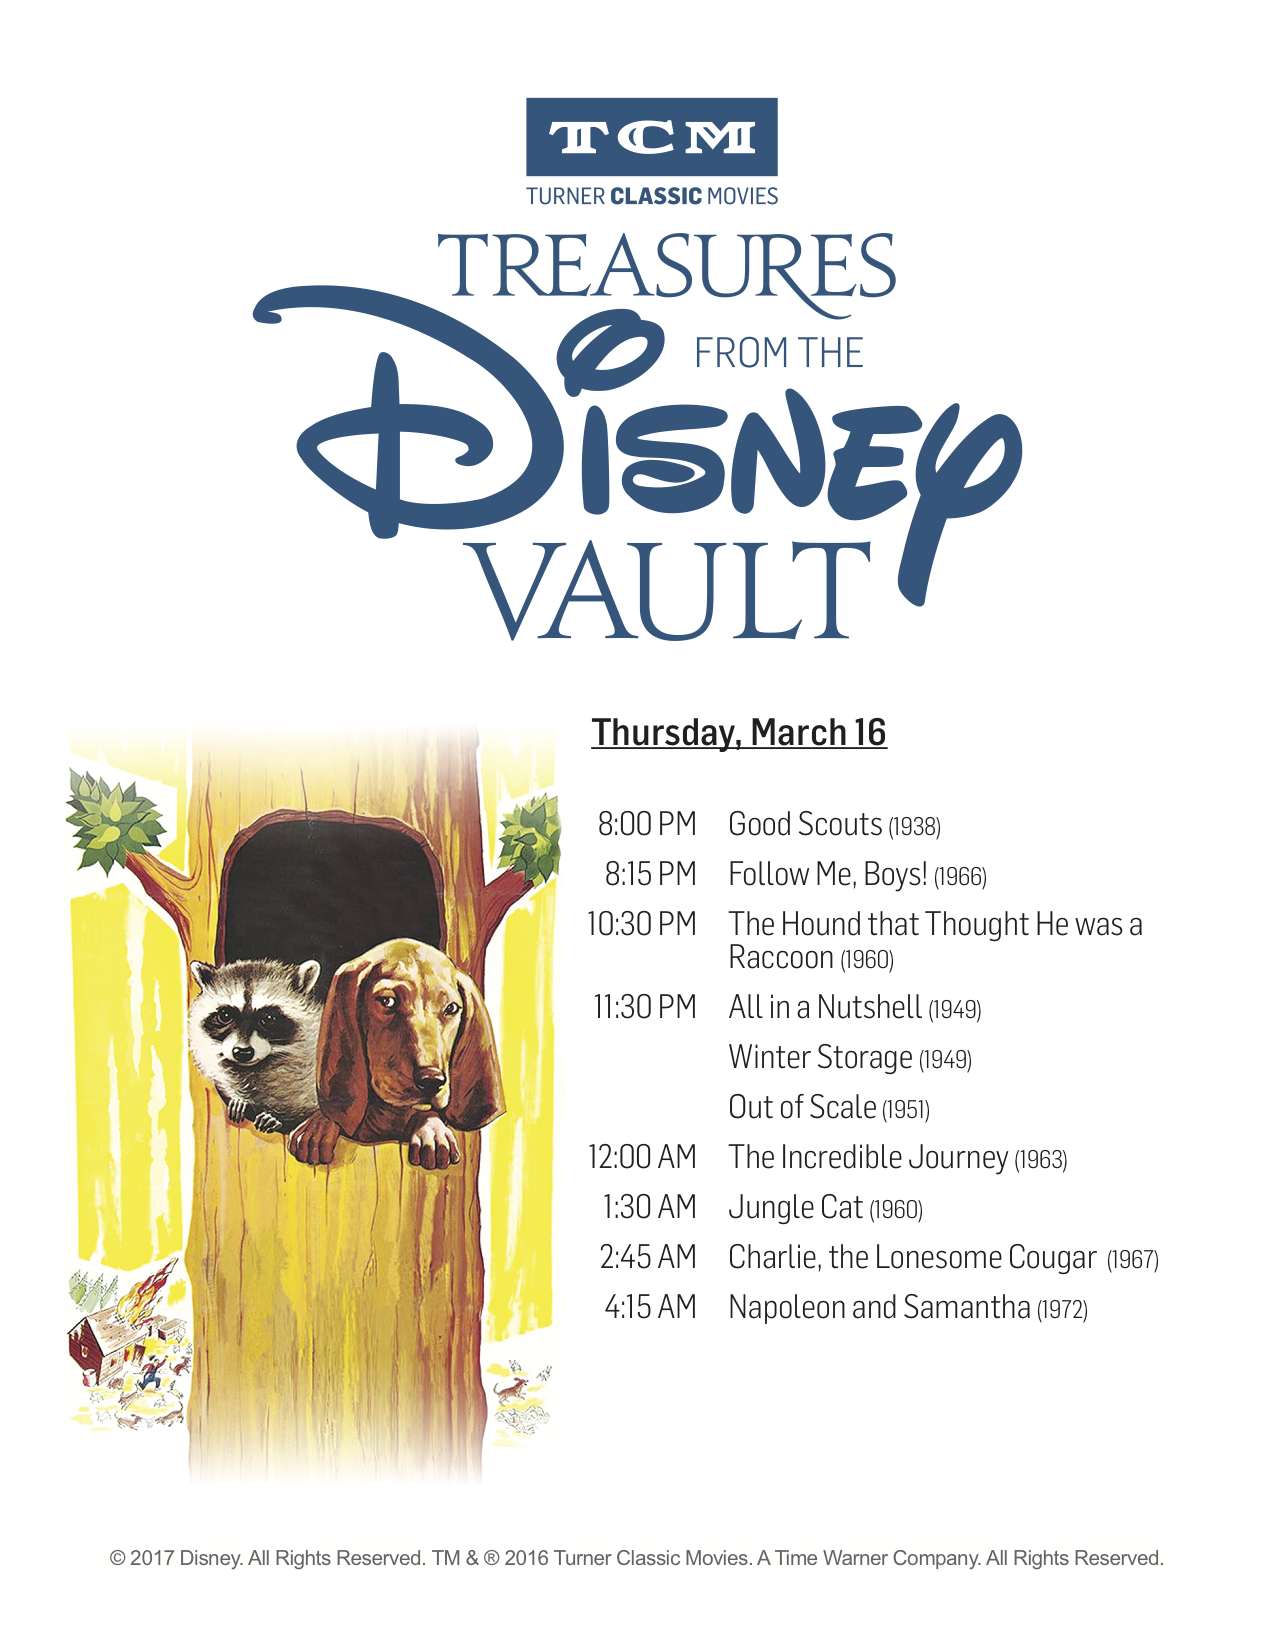 image - treasures from the disney vault schedule | disney wiki